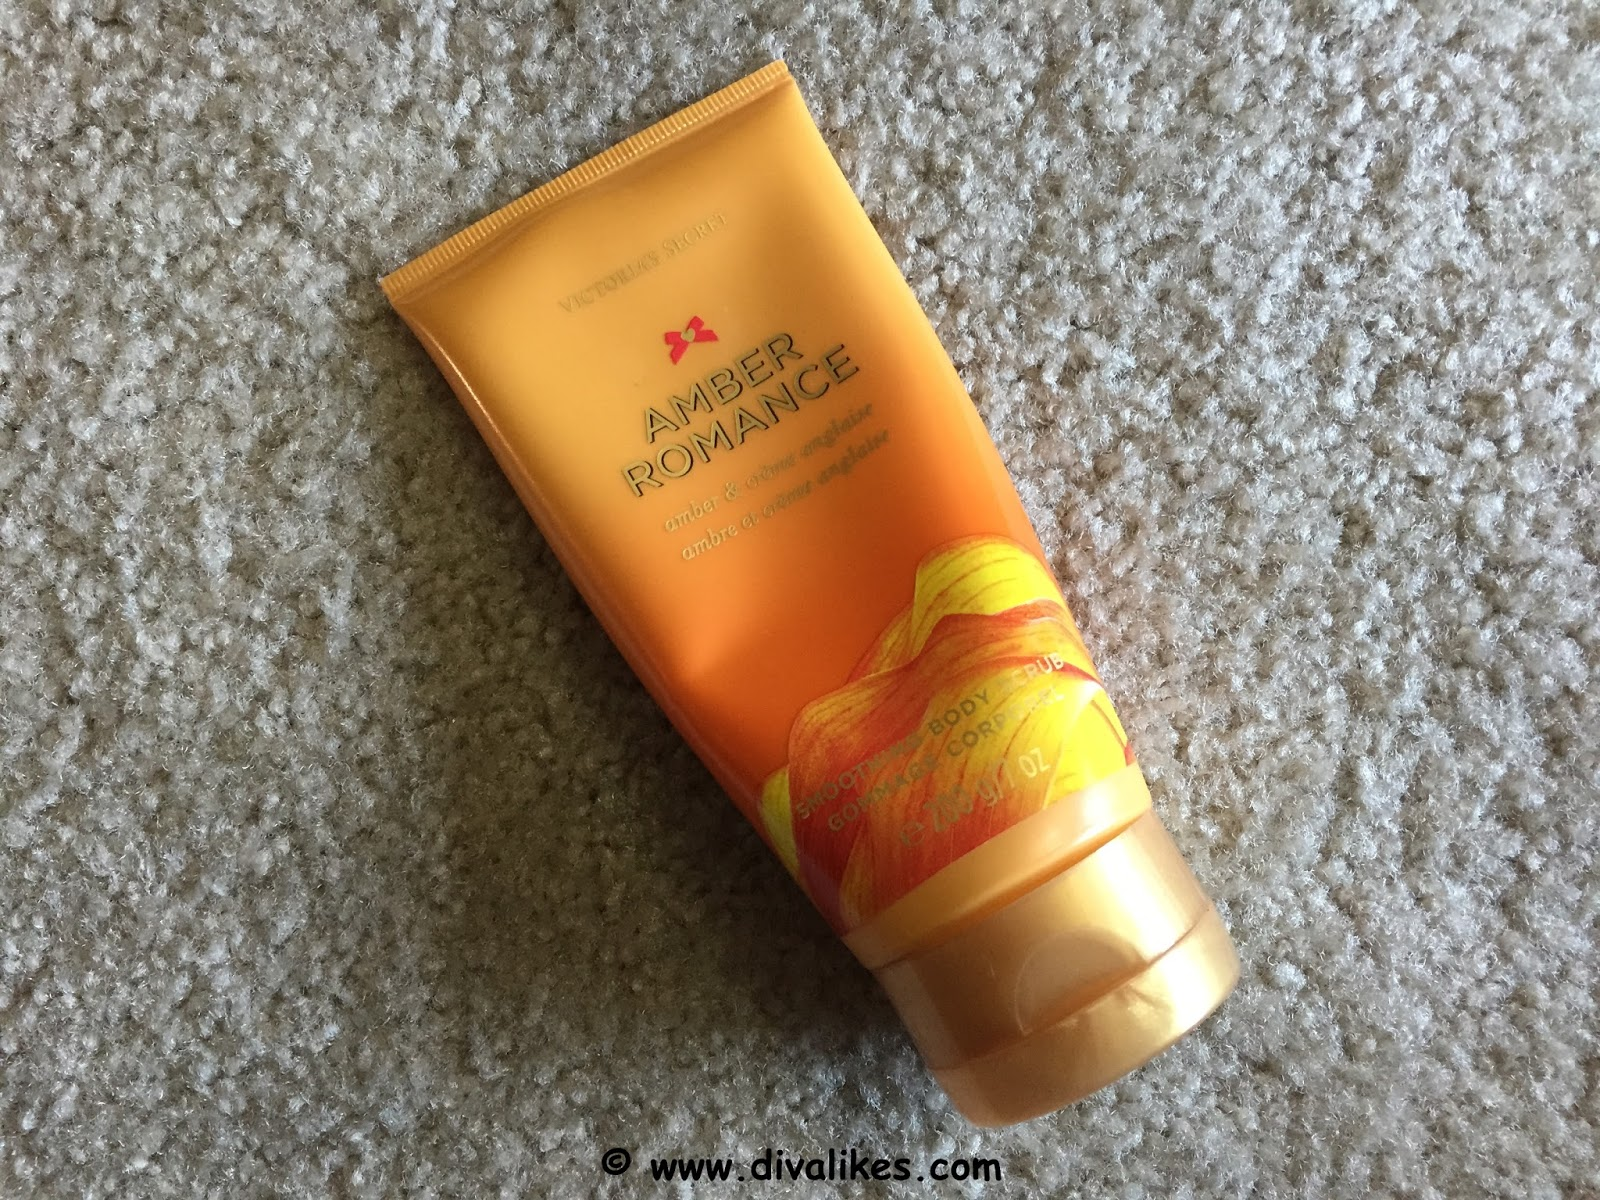 2514597d989d1 Victoria's Secret Amber Romance Smoothing Body Scrub Review | Diva Likes